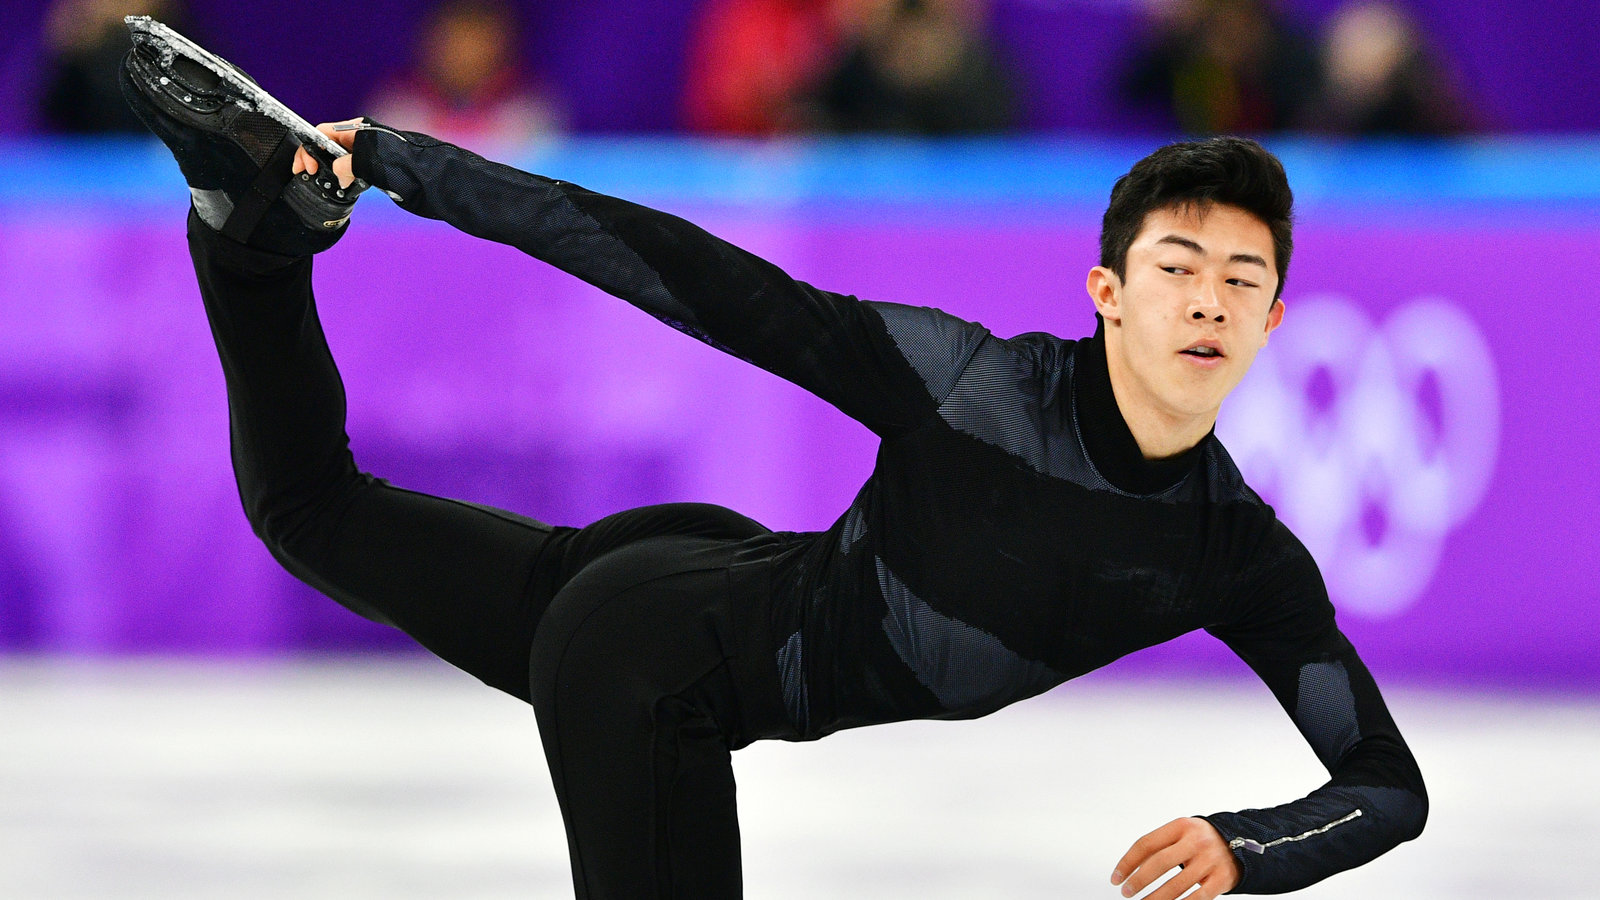 Unbelievable Wallpaper Hd Why Nathan Chen Shuns Sequins The New York Times